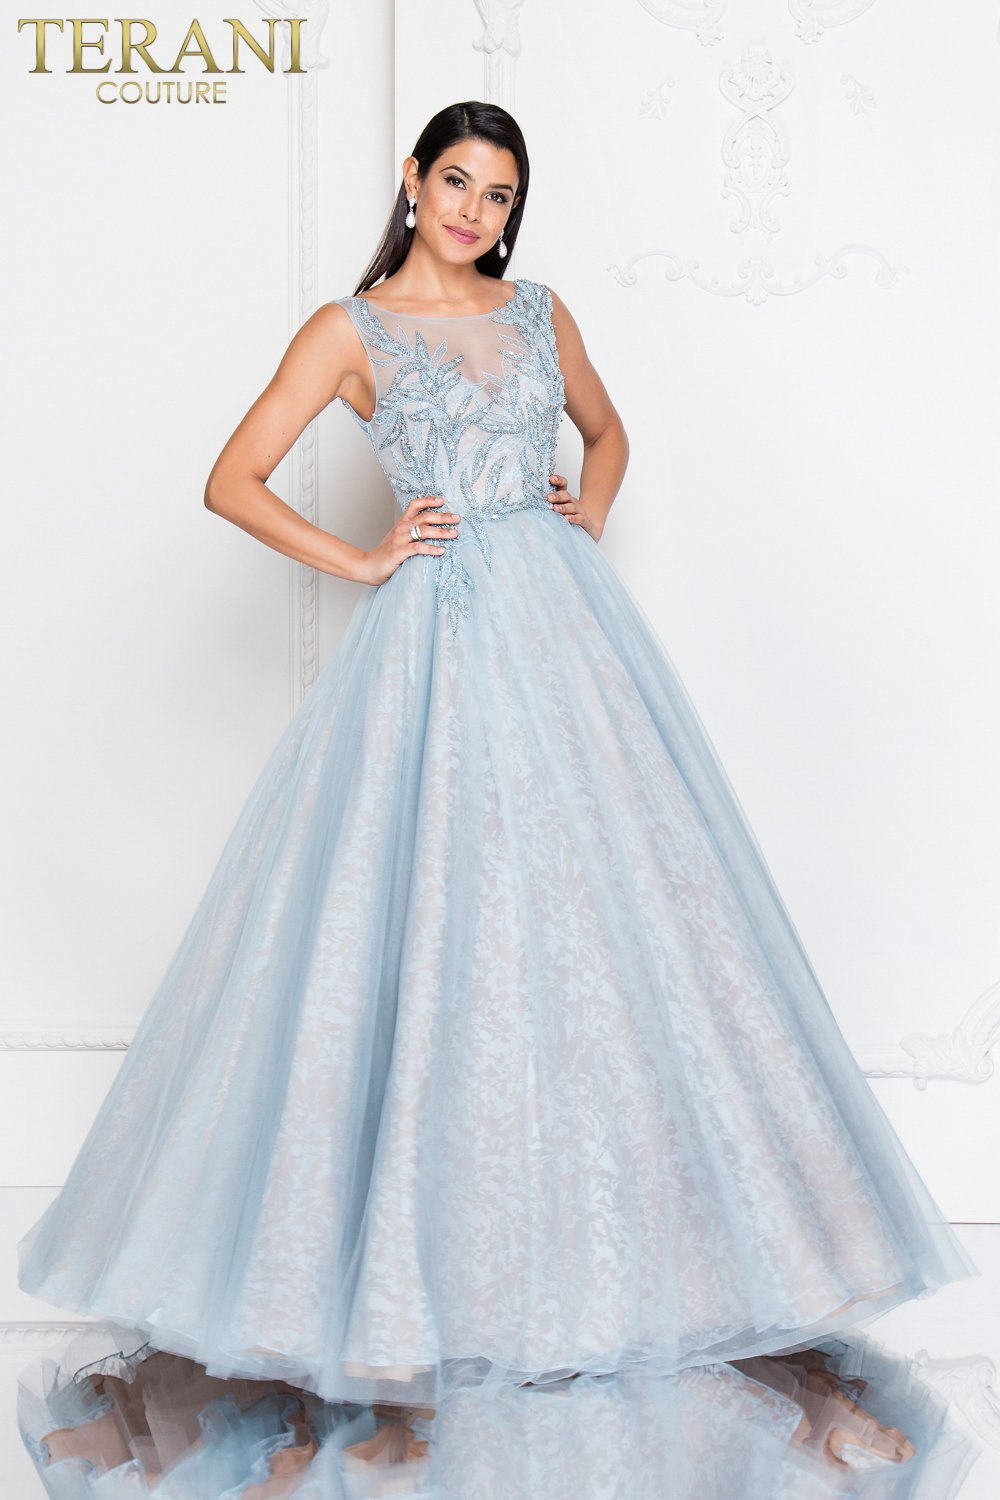 3D Beaded Bodice Organza Ball Skirt Prom Dress – 1811P5798